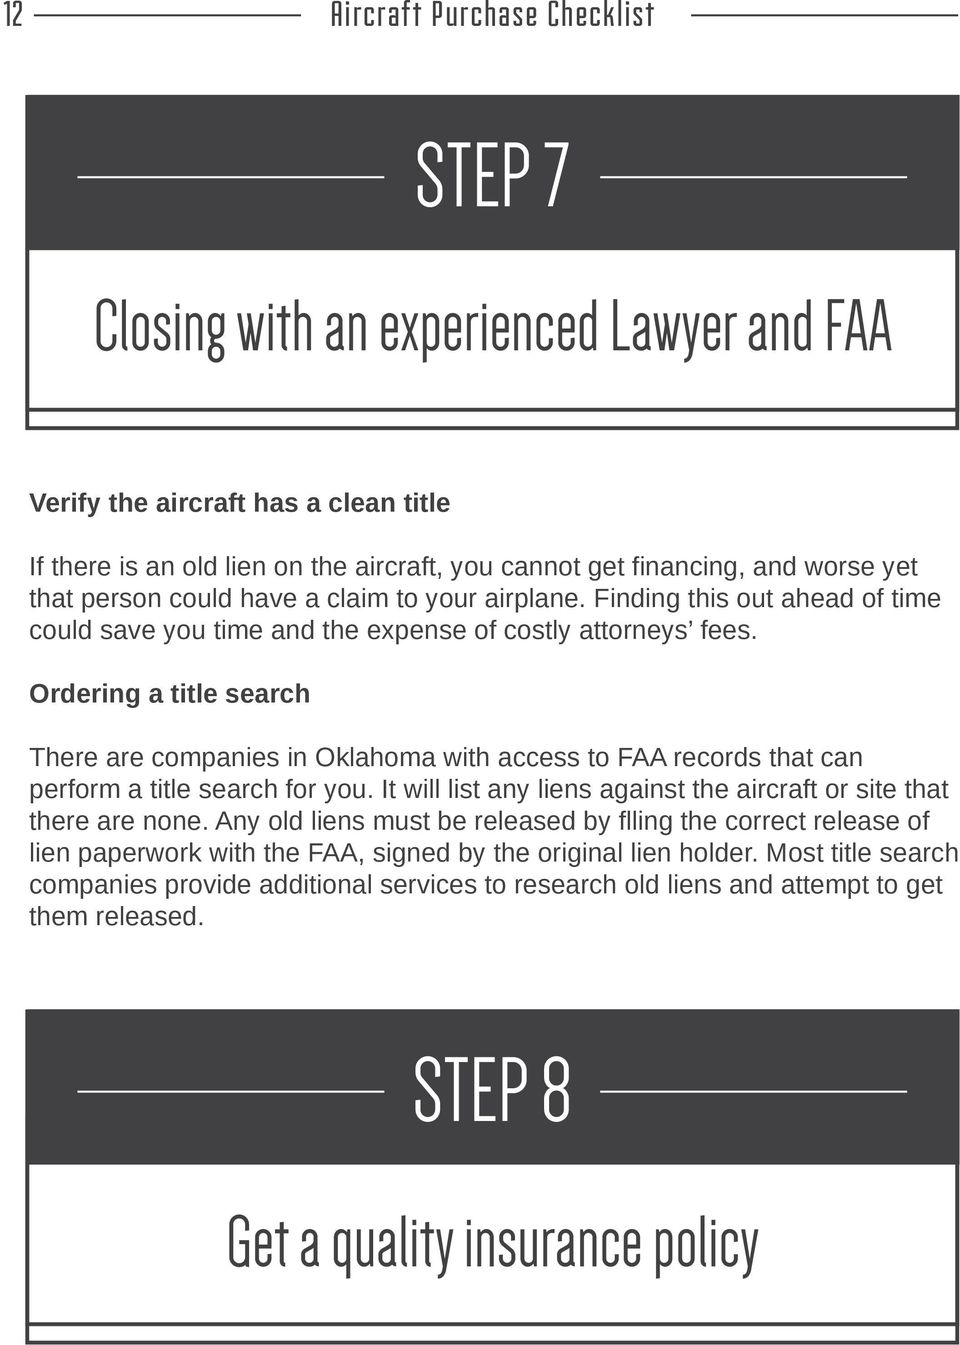 Ordering a title search There are companies in Oklahoma with access to FAA records that can perform a title search for you. It will list any liens against the aircraft or site that there are none.